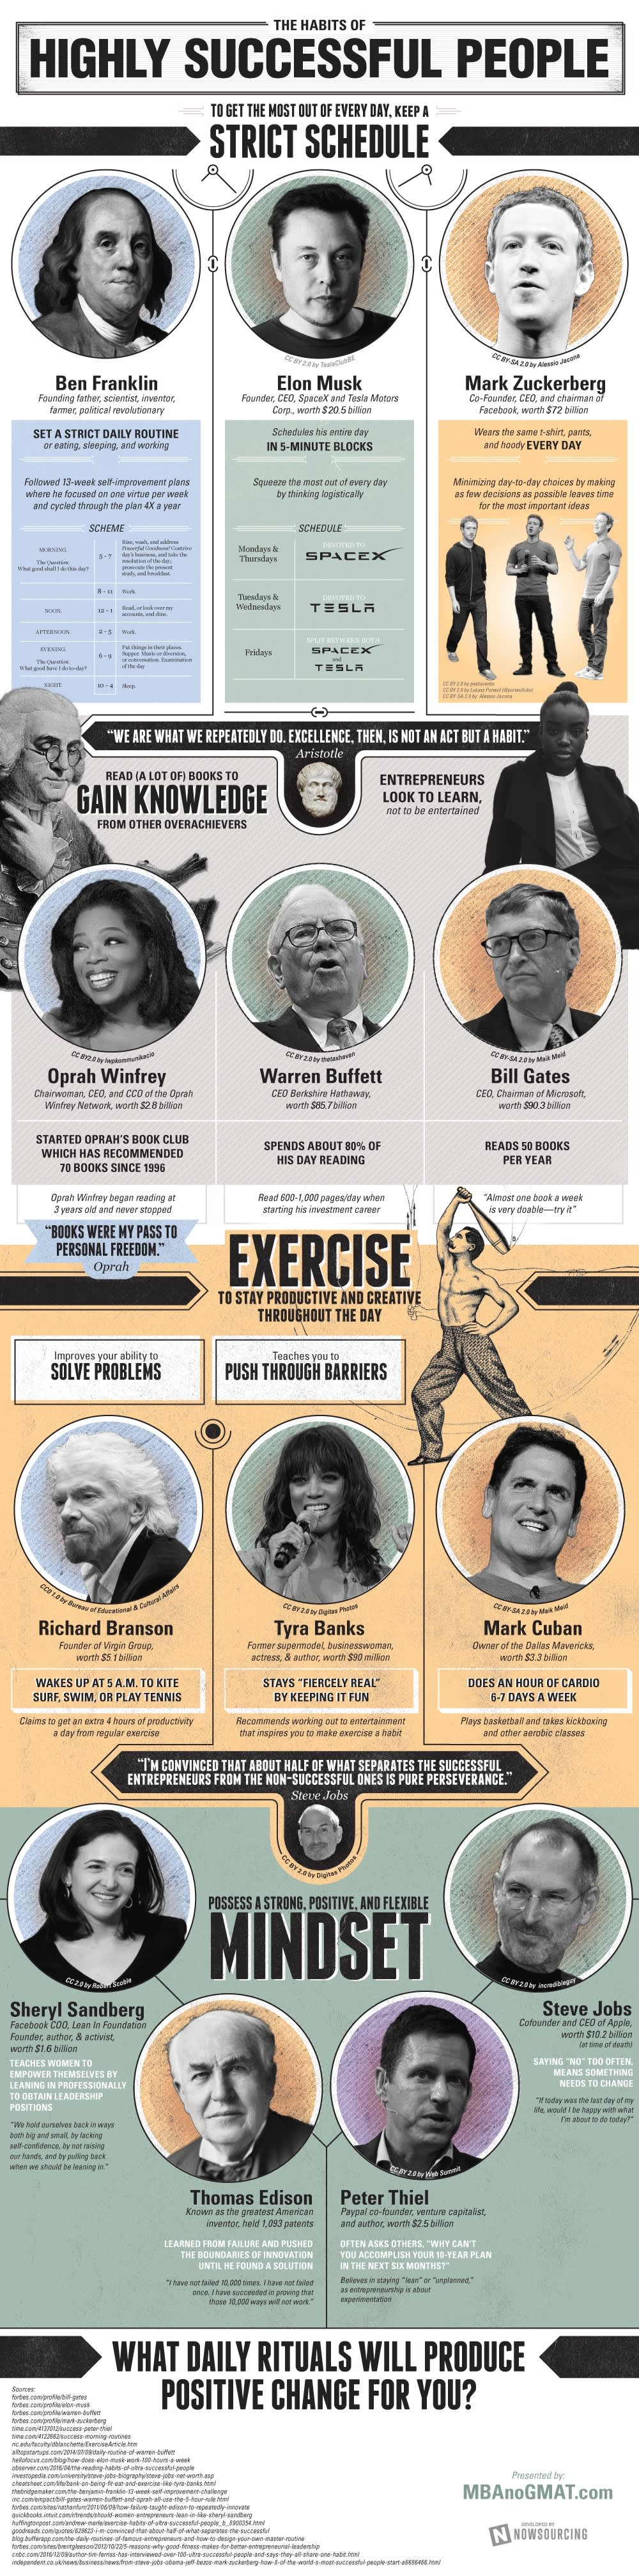 Highly successful people infographic